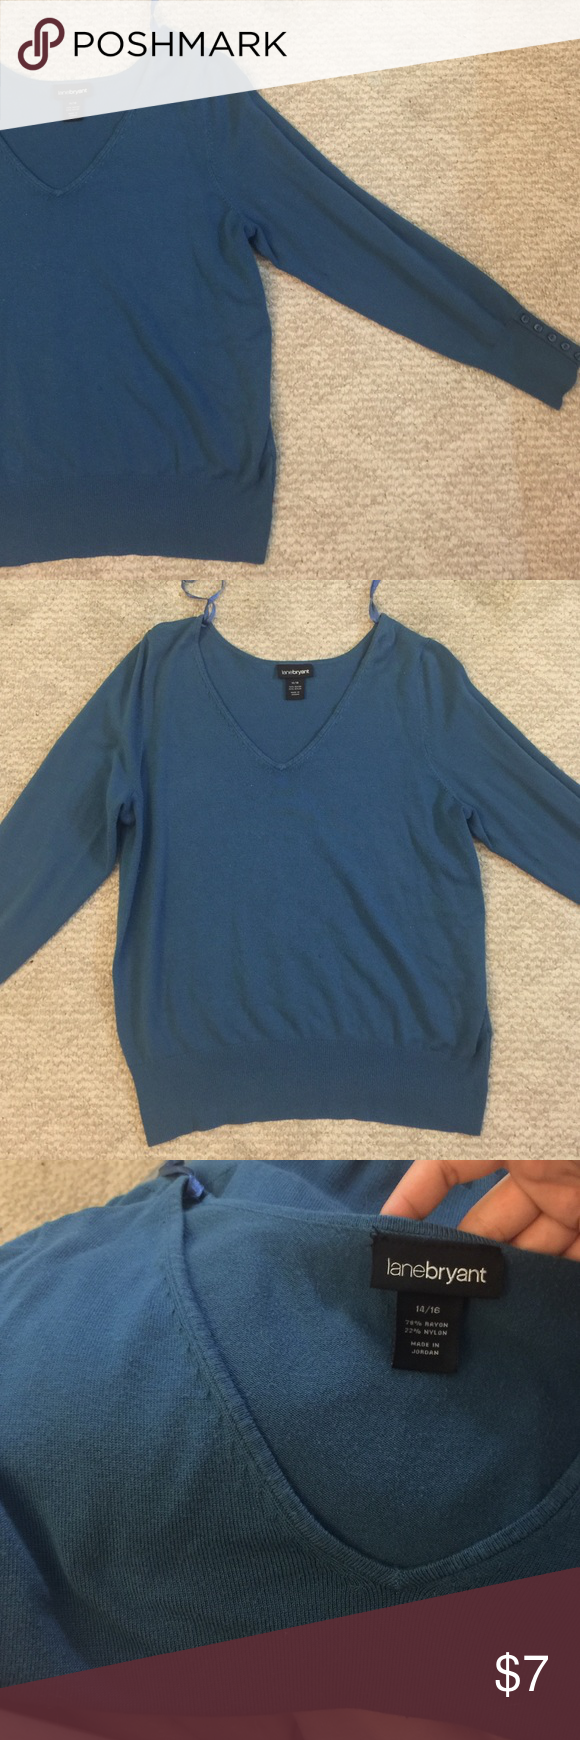 Blue sweater Slight piling but nothing noticeable or damaging. Bundle for discounts. 14/16 Lane Bryant Sweaters V-Necks